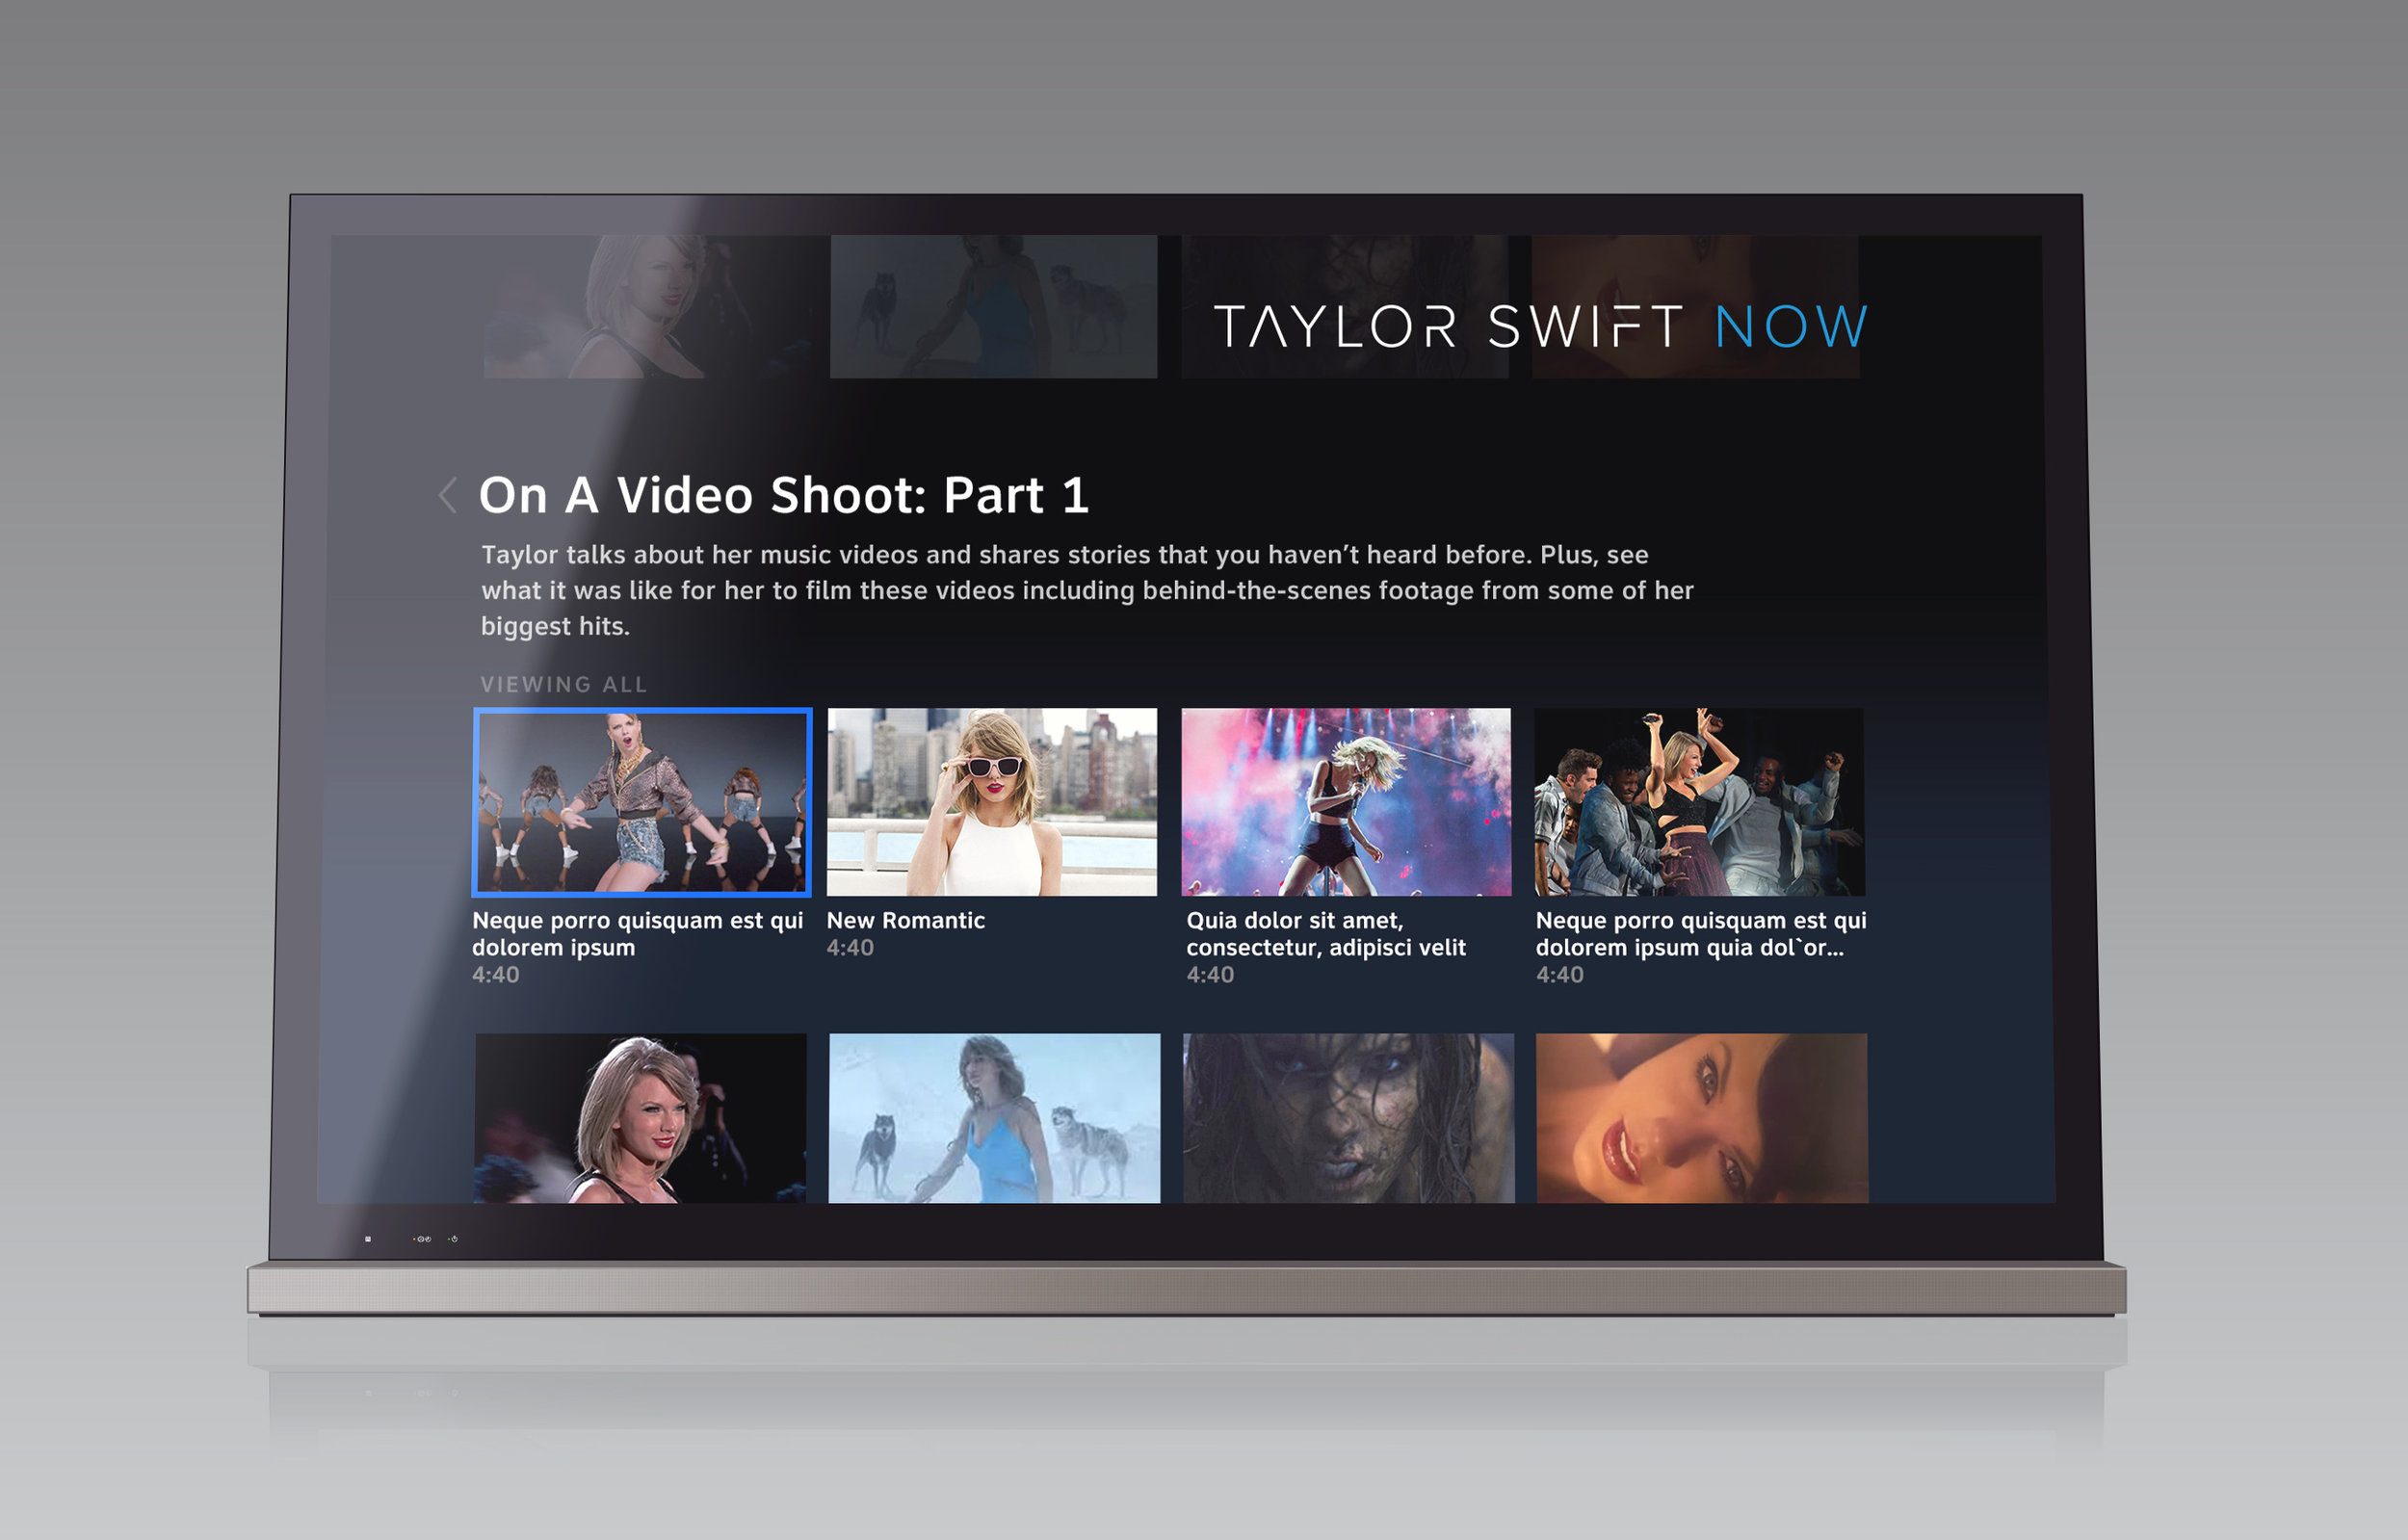 Taylor Swift - Taylor Swift NOW provides fans with video footage all relating to Taylor so that fans can stay engaged with her. It is a unique experience for DIRECTV and AT&T U-Verse subscribers.